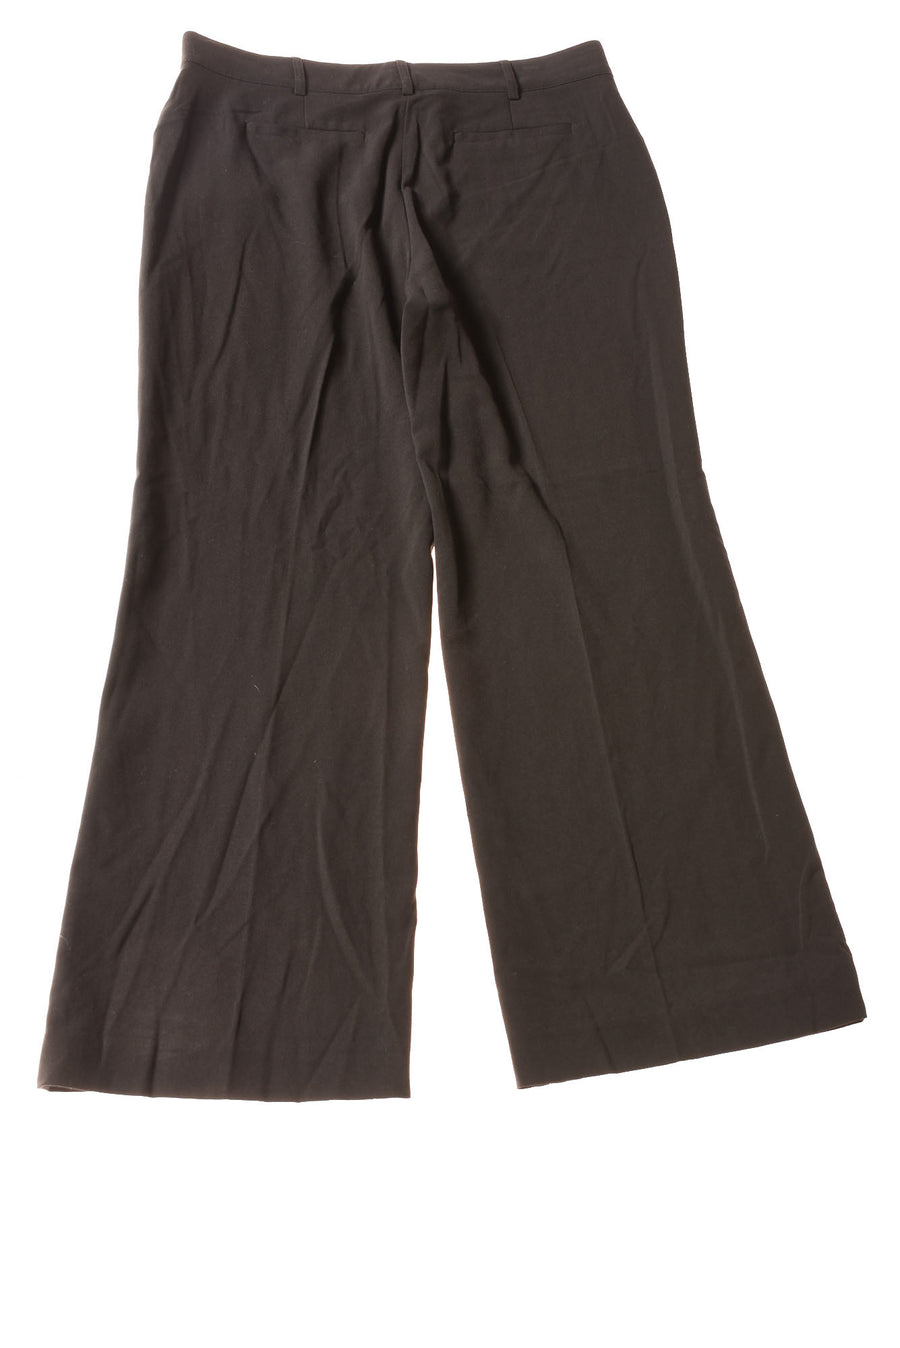 NEW Counter Parts Women's Slacks 14 Black